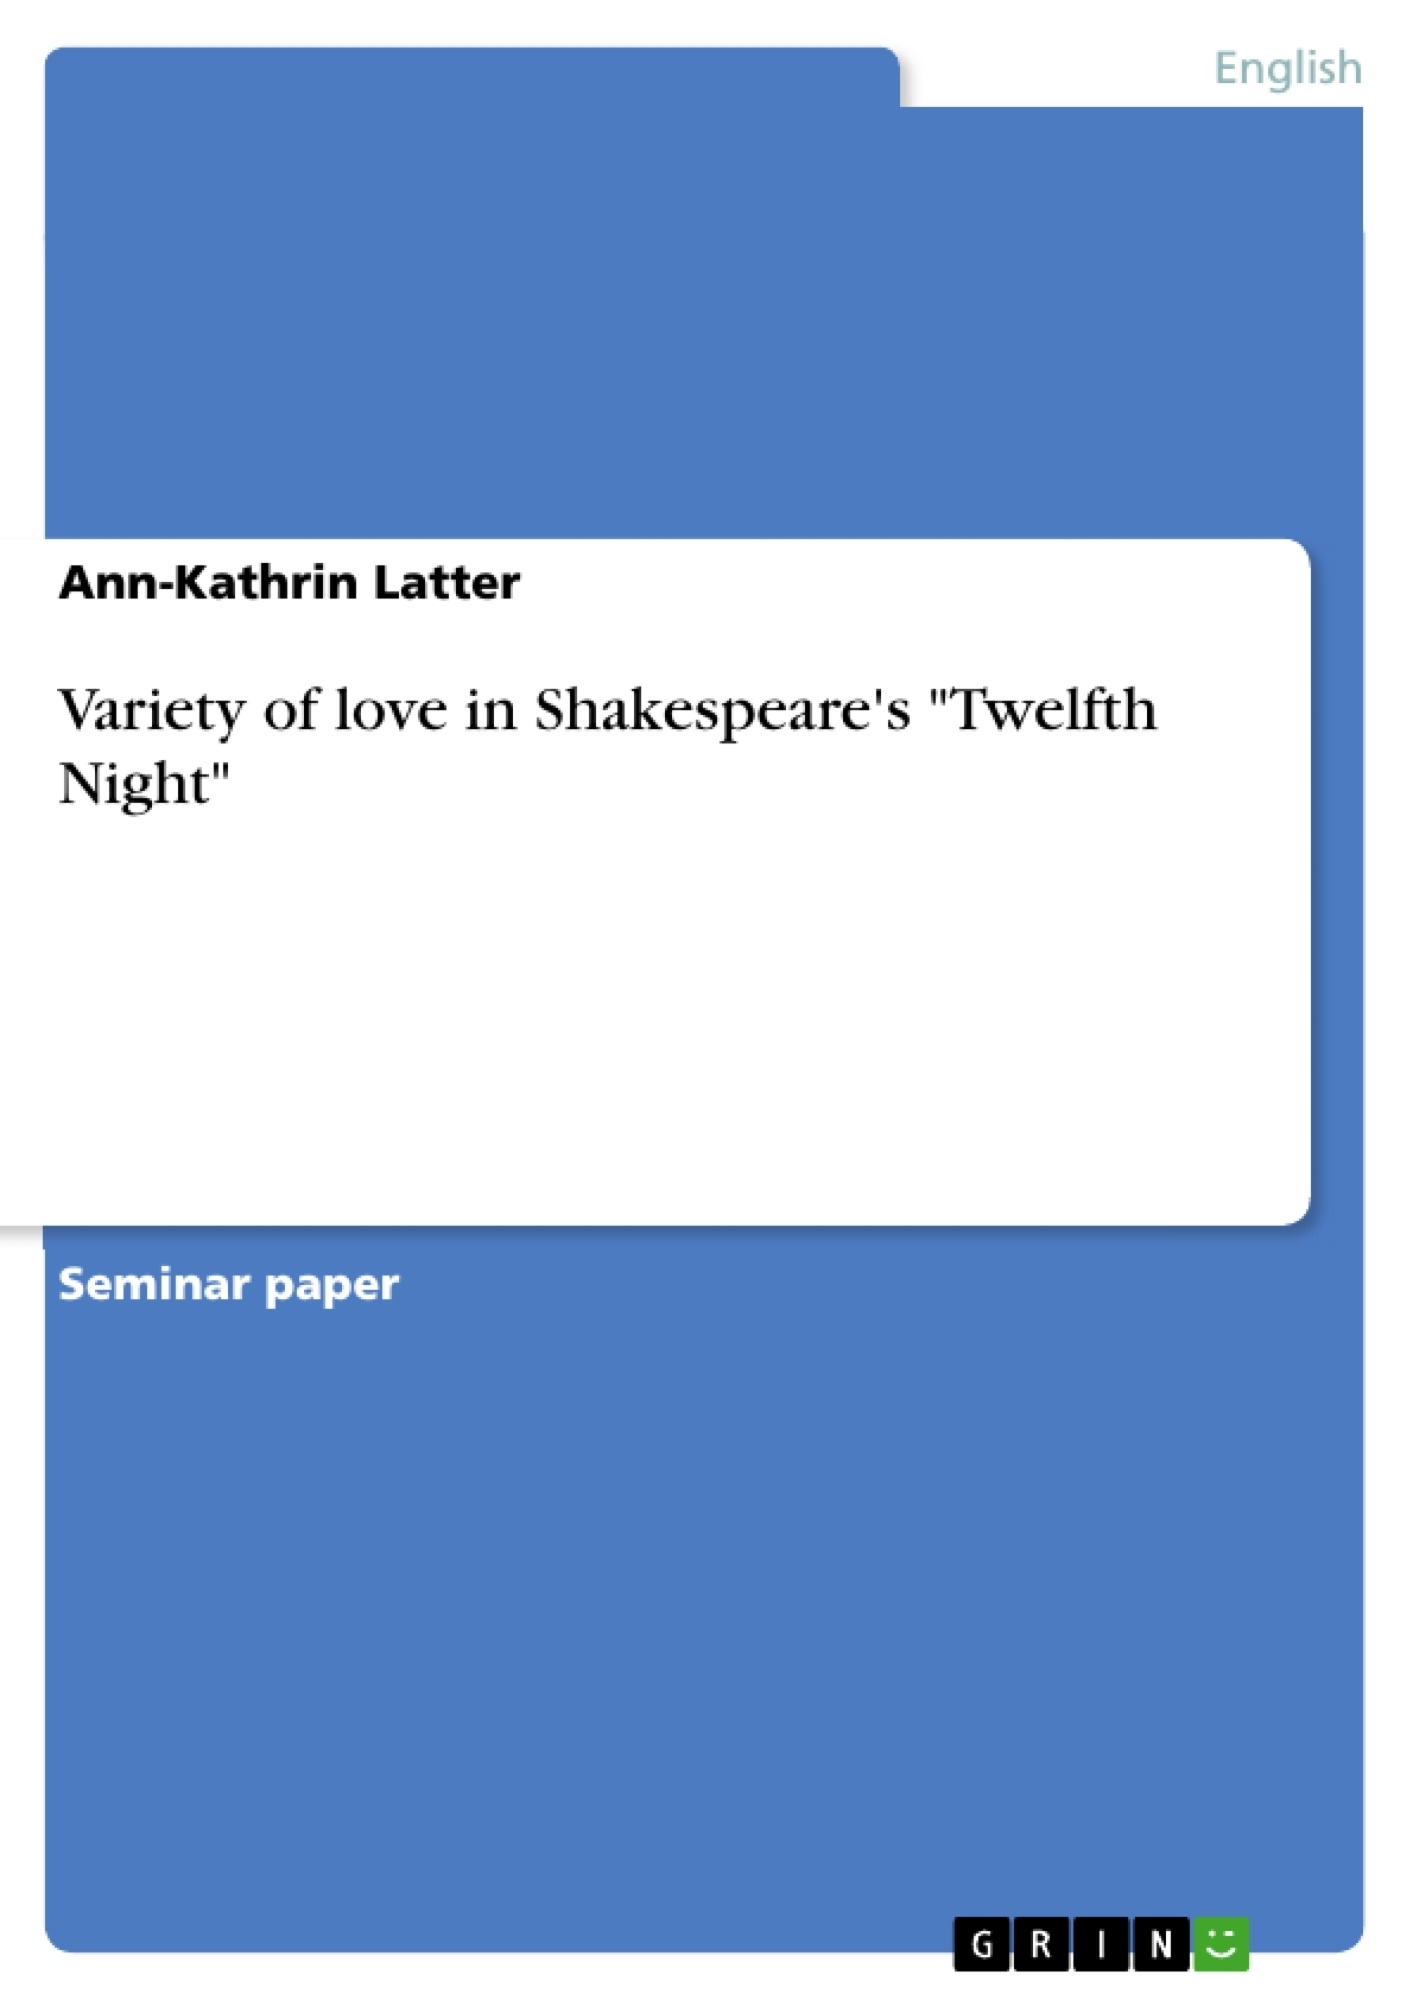 variety of love in shakespeare s twelfth night publish your upload your own papers earn money and win an iphone 7